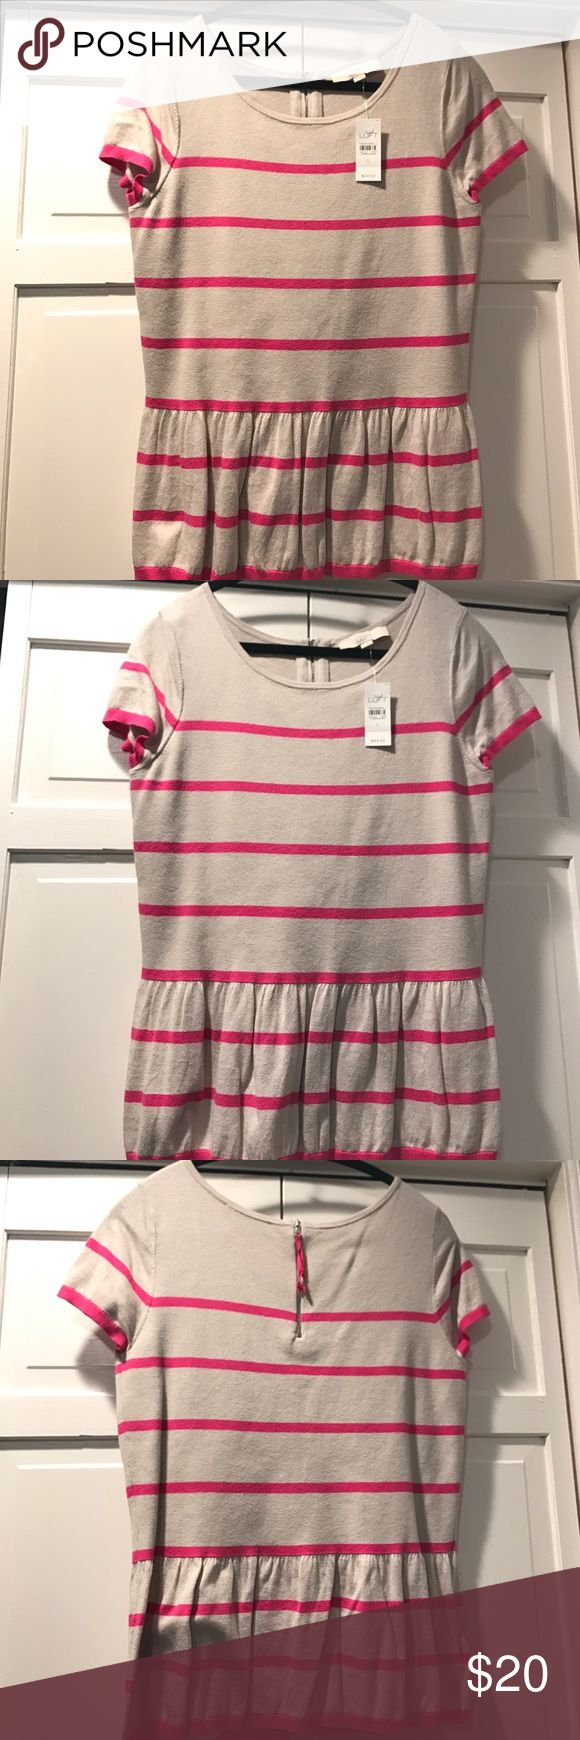 LOFT top Cream short sleeve top with pink stripes, NWT, never worn! LOFT Tops Tees - Short Sleeve